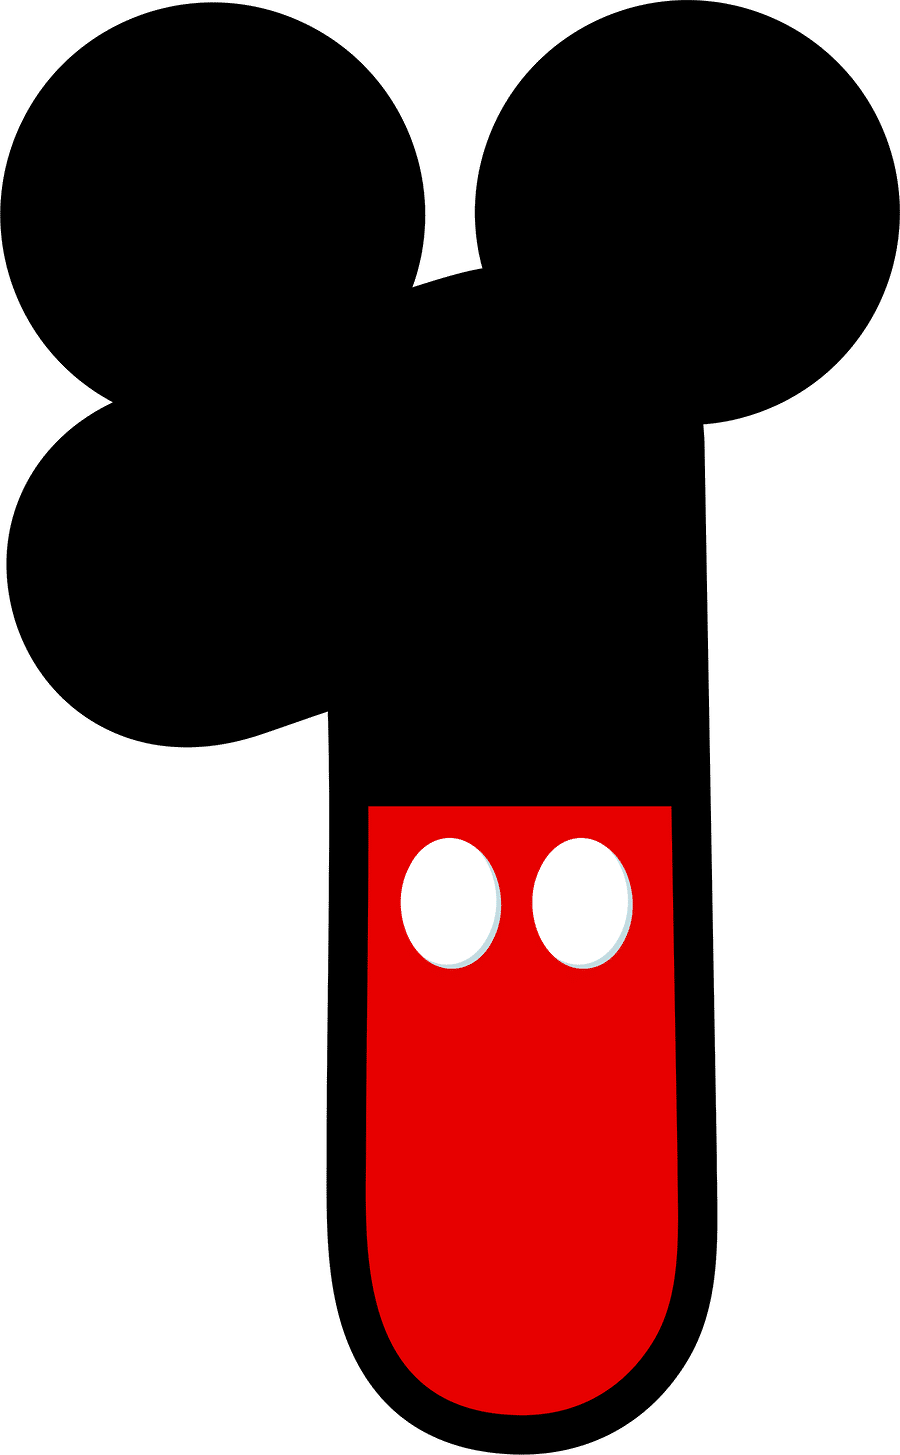 Free Mickey Mouse Head Image